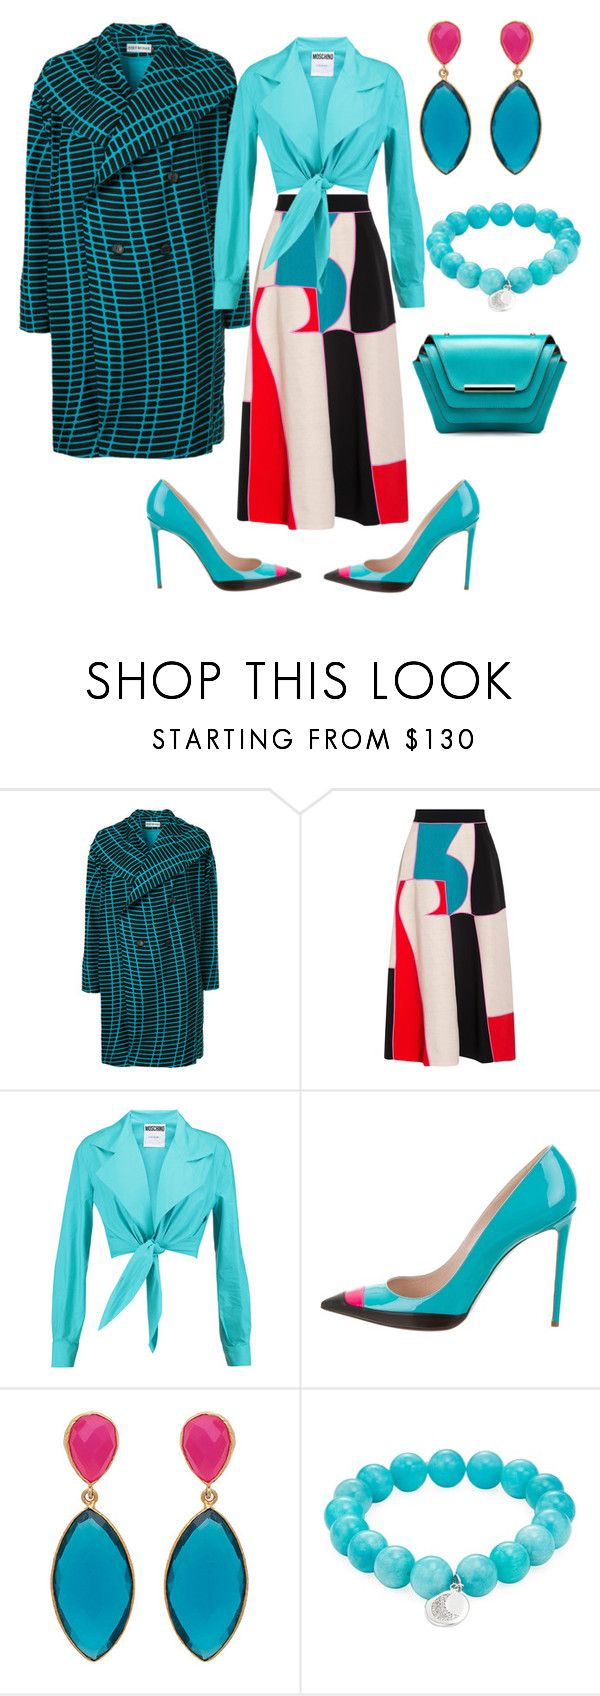 """""""Untitled #2756"""" by deirdre35 ❤ liked on Polyvore featuring Issey Miyake, Roksanda, Moschino, Ruthie Davis, Anzie and Ellia Wang"""